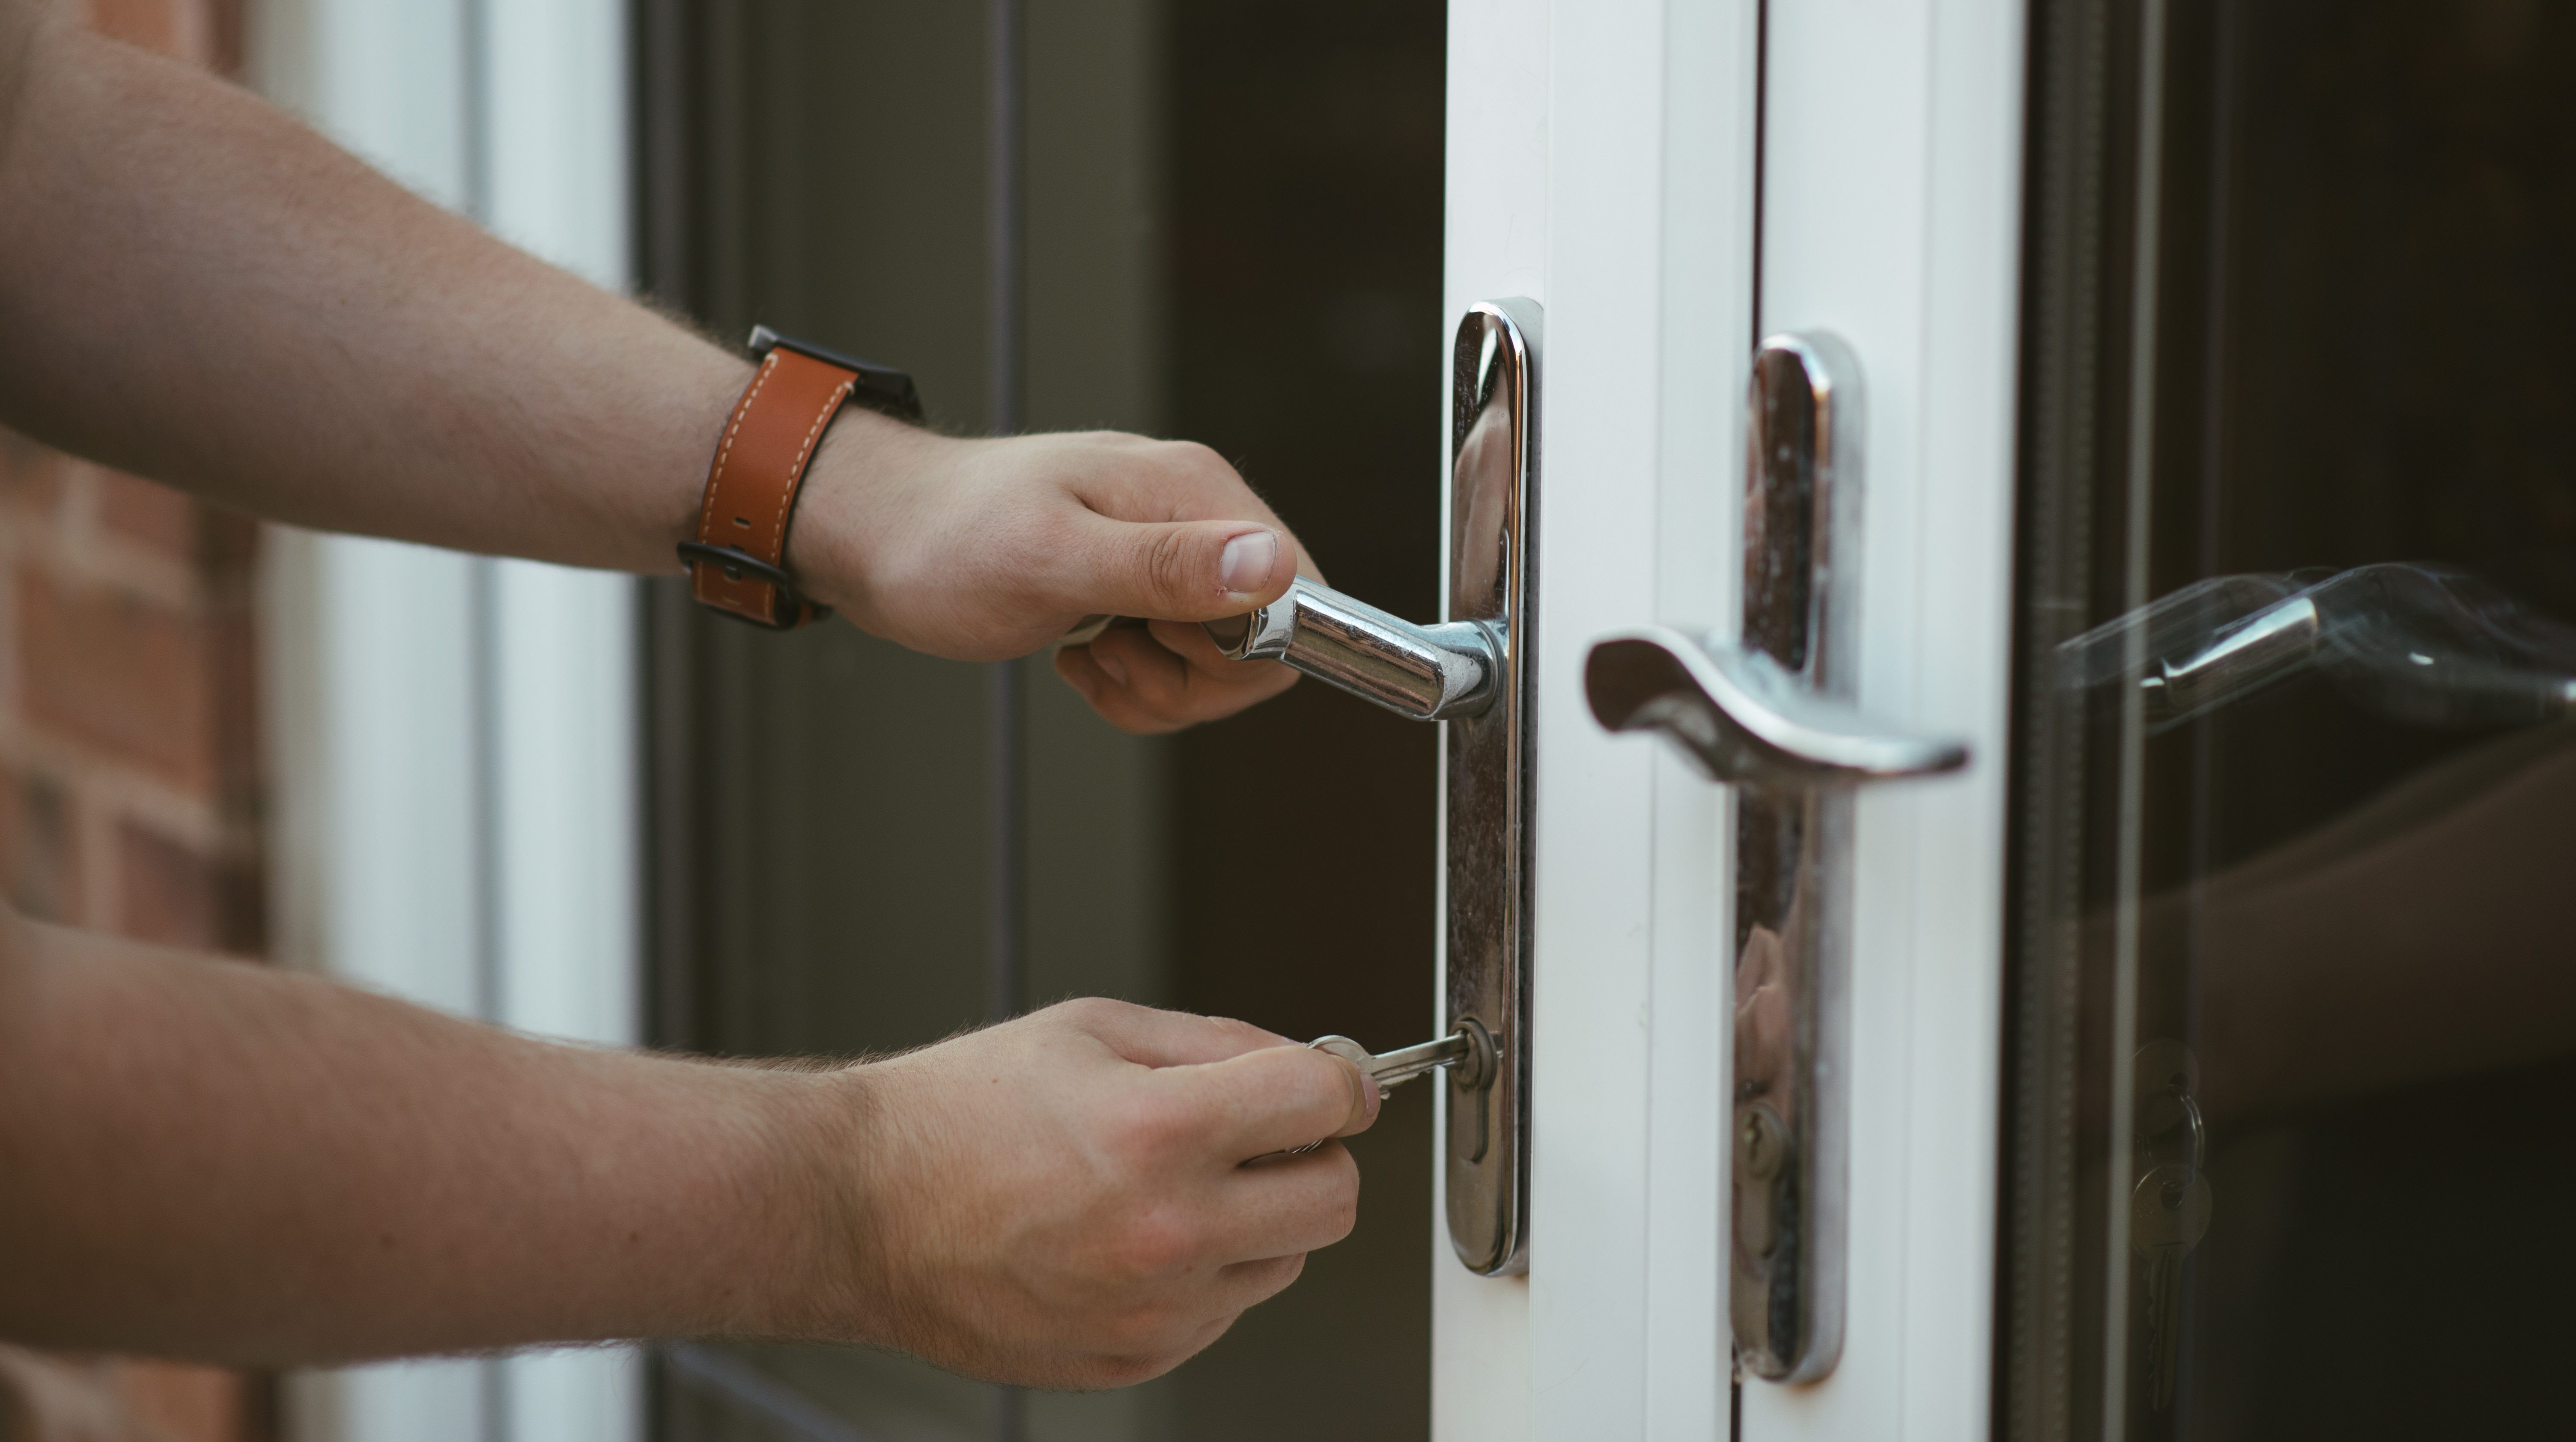 Locksafe locksmiths Liverpool, call us on 0151 321 4155 or 07596 922 107 for 24/7 security issues